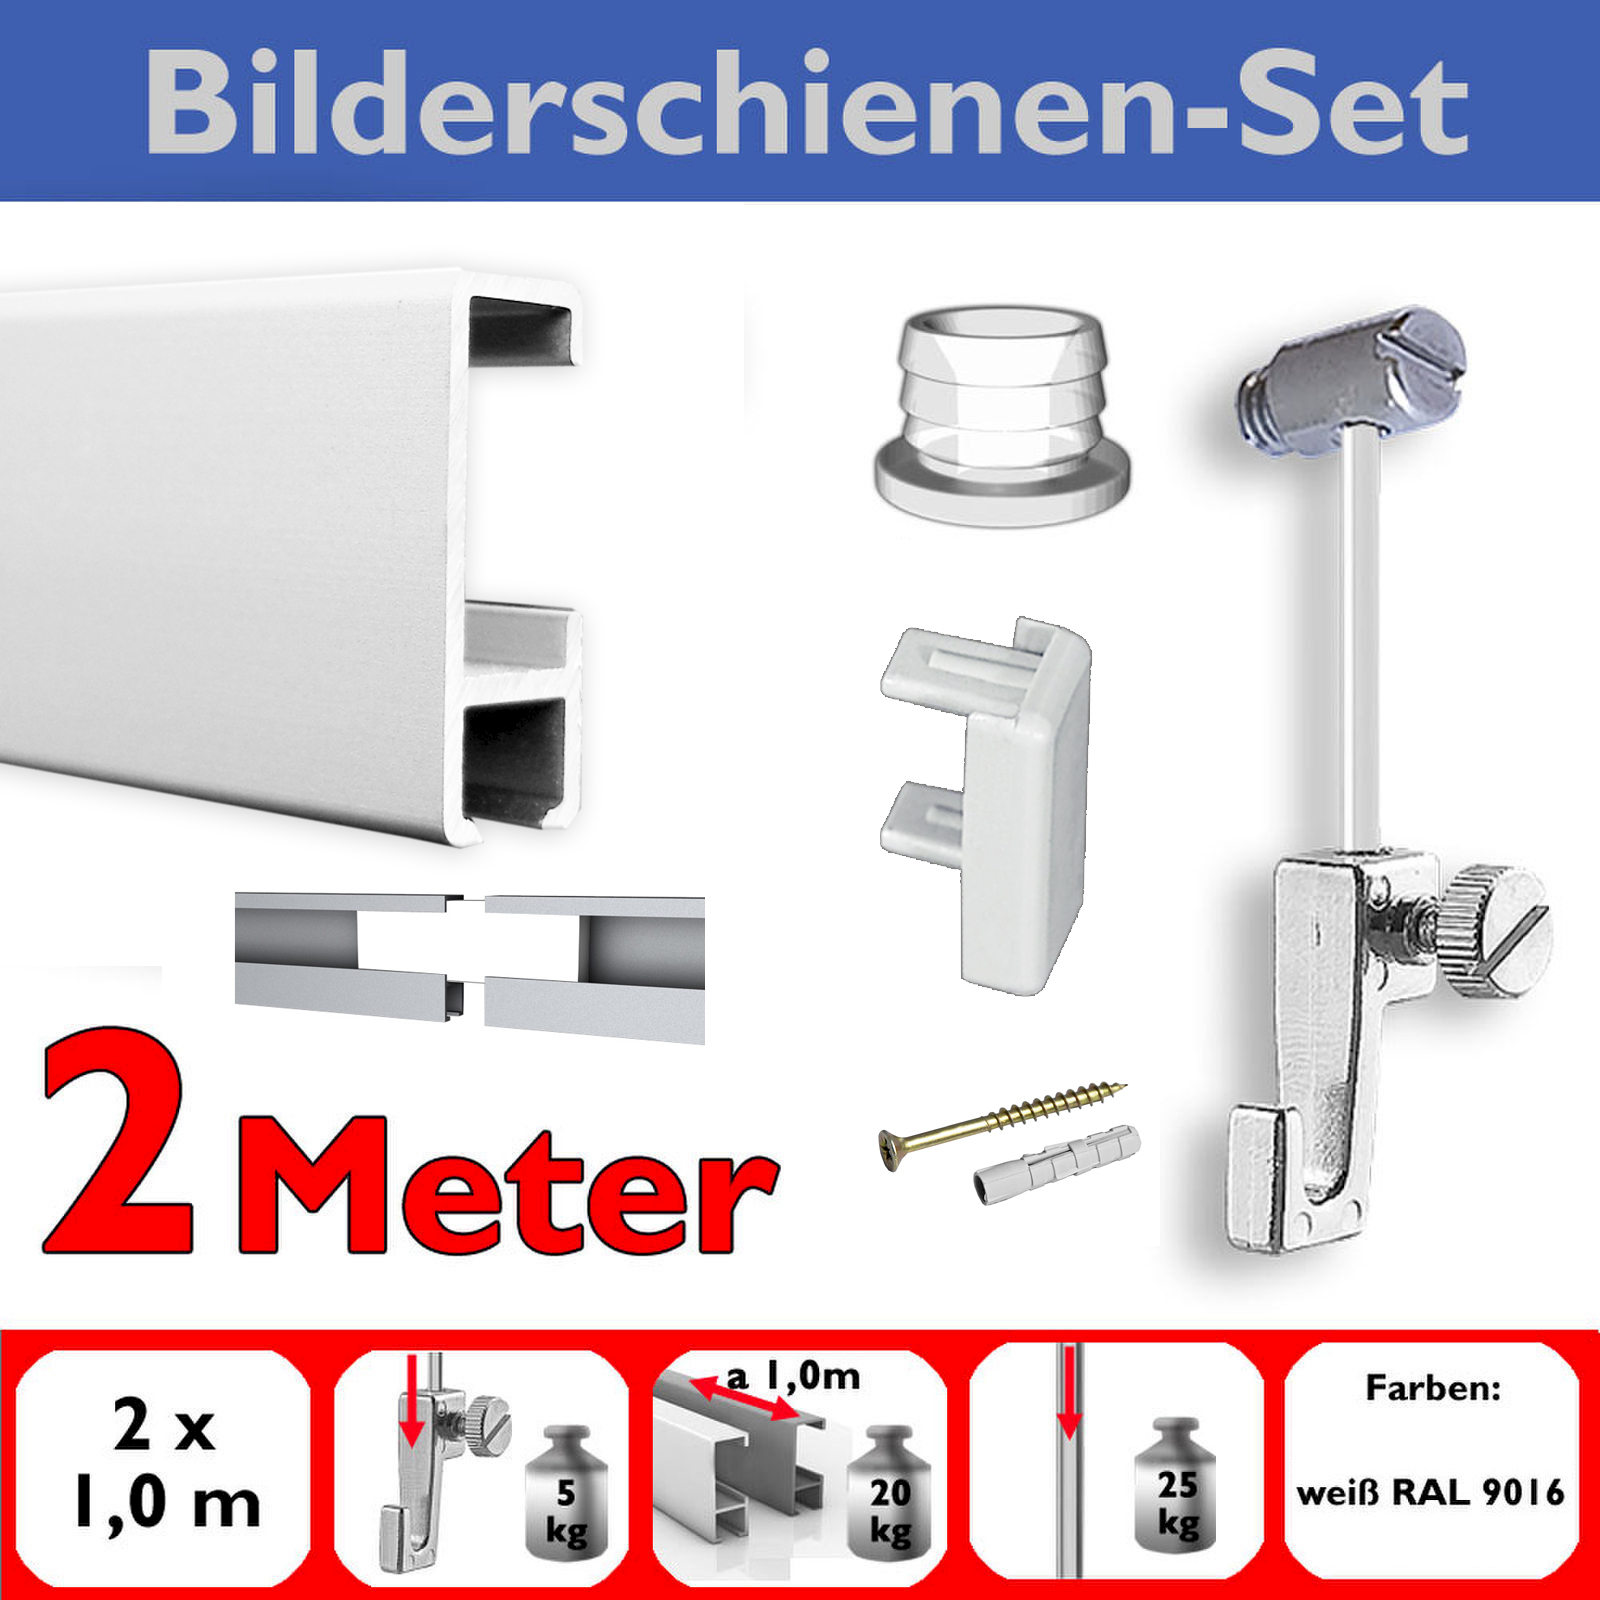 galerieschiene mit gleiter 2 m bilderschienen set mit zubeh r wei ebay. Black Bedroom Furniture Sets. Home Design Ideas